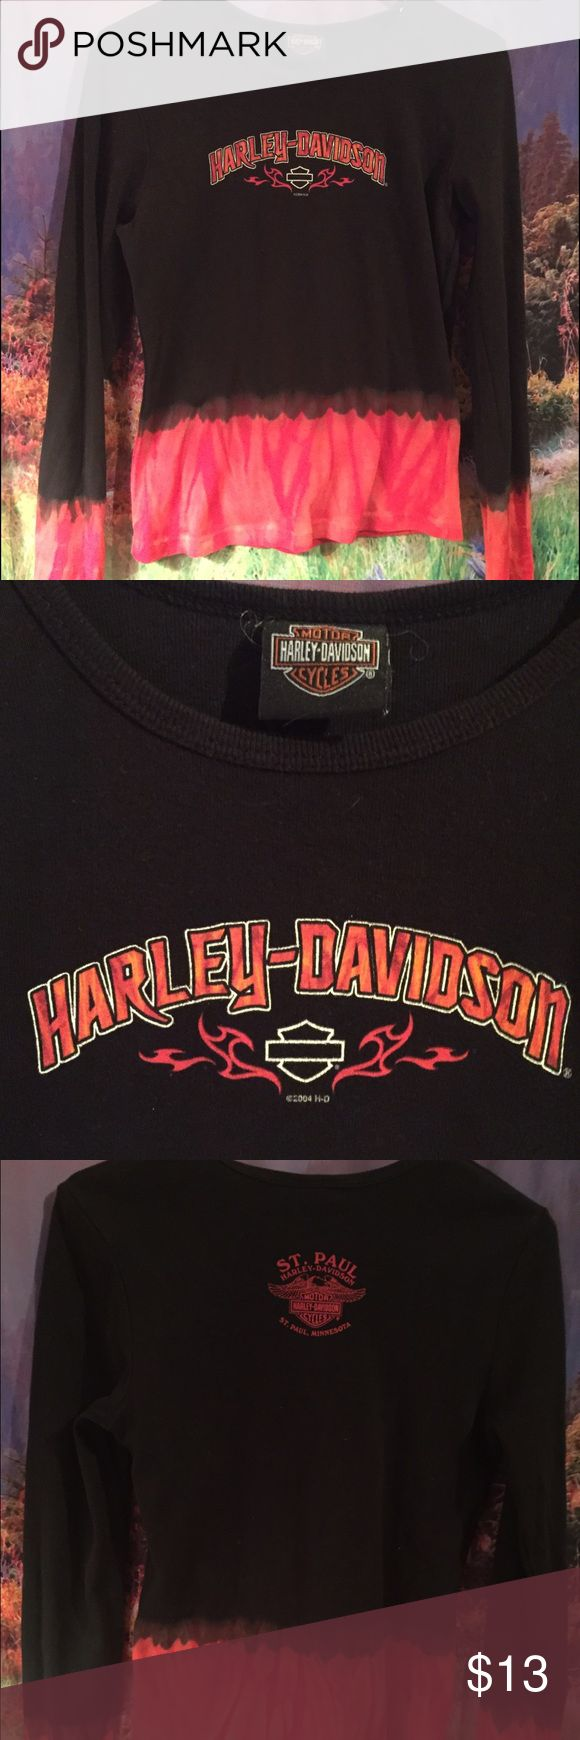 Super cool flame top Harley-Davidson biker shirt This is a really cool long sleeve ladies T-shirt. Size medium Harley-Davidson St. Paul Minnesota. Great used condition. Make me an offer 🏍 Harley-Davidson Tops Tees - Long Sleeve